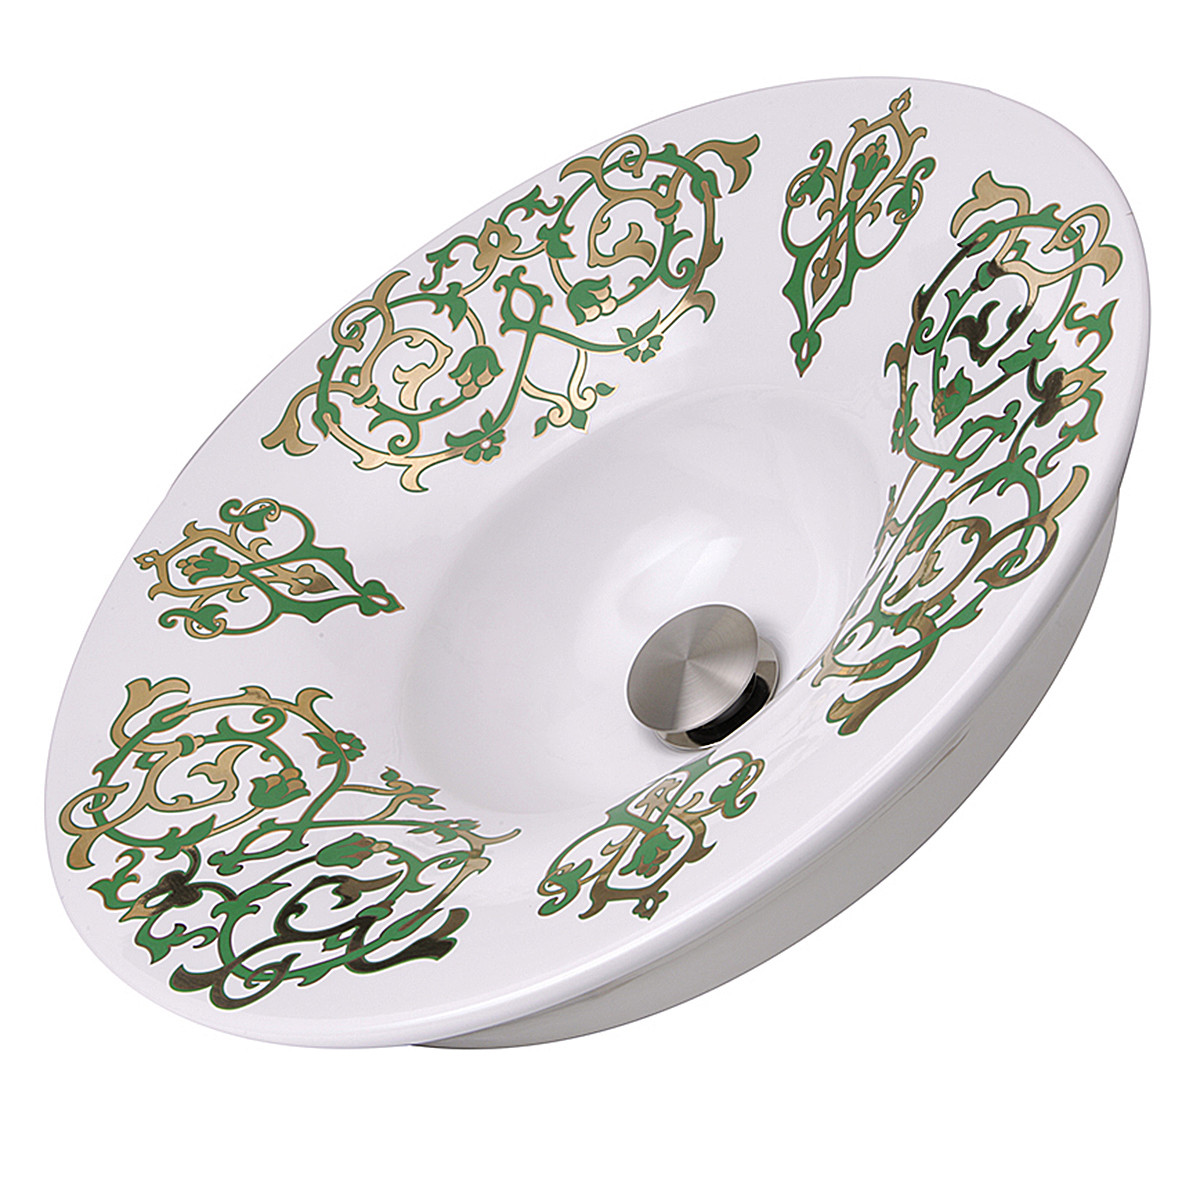 Nantucket Sinks RC77240GF Lugano Fireclay Hand-decorated Vanity Sink